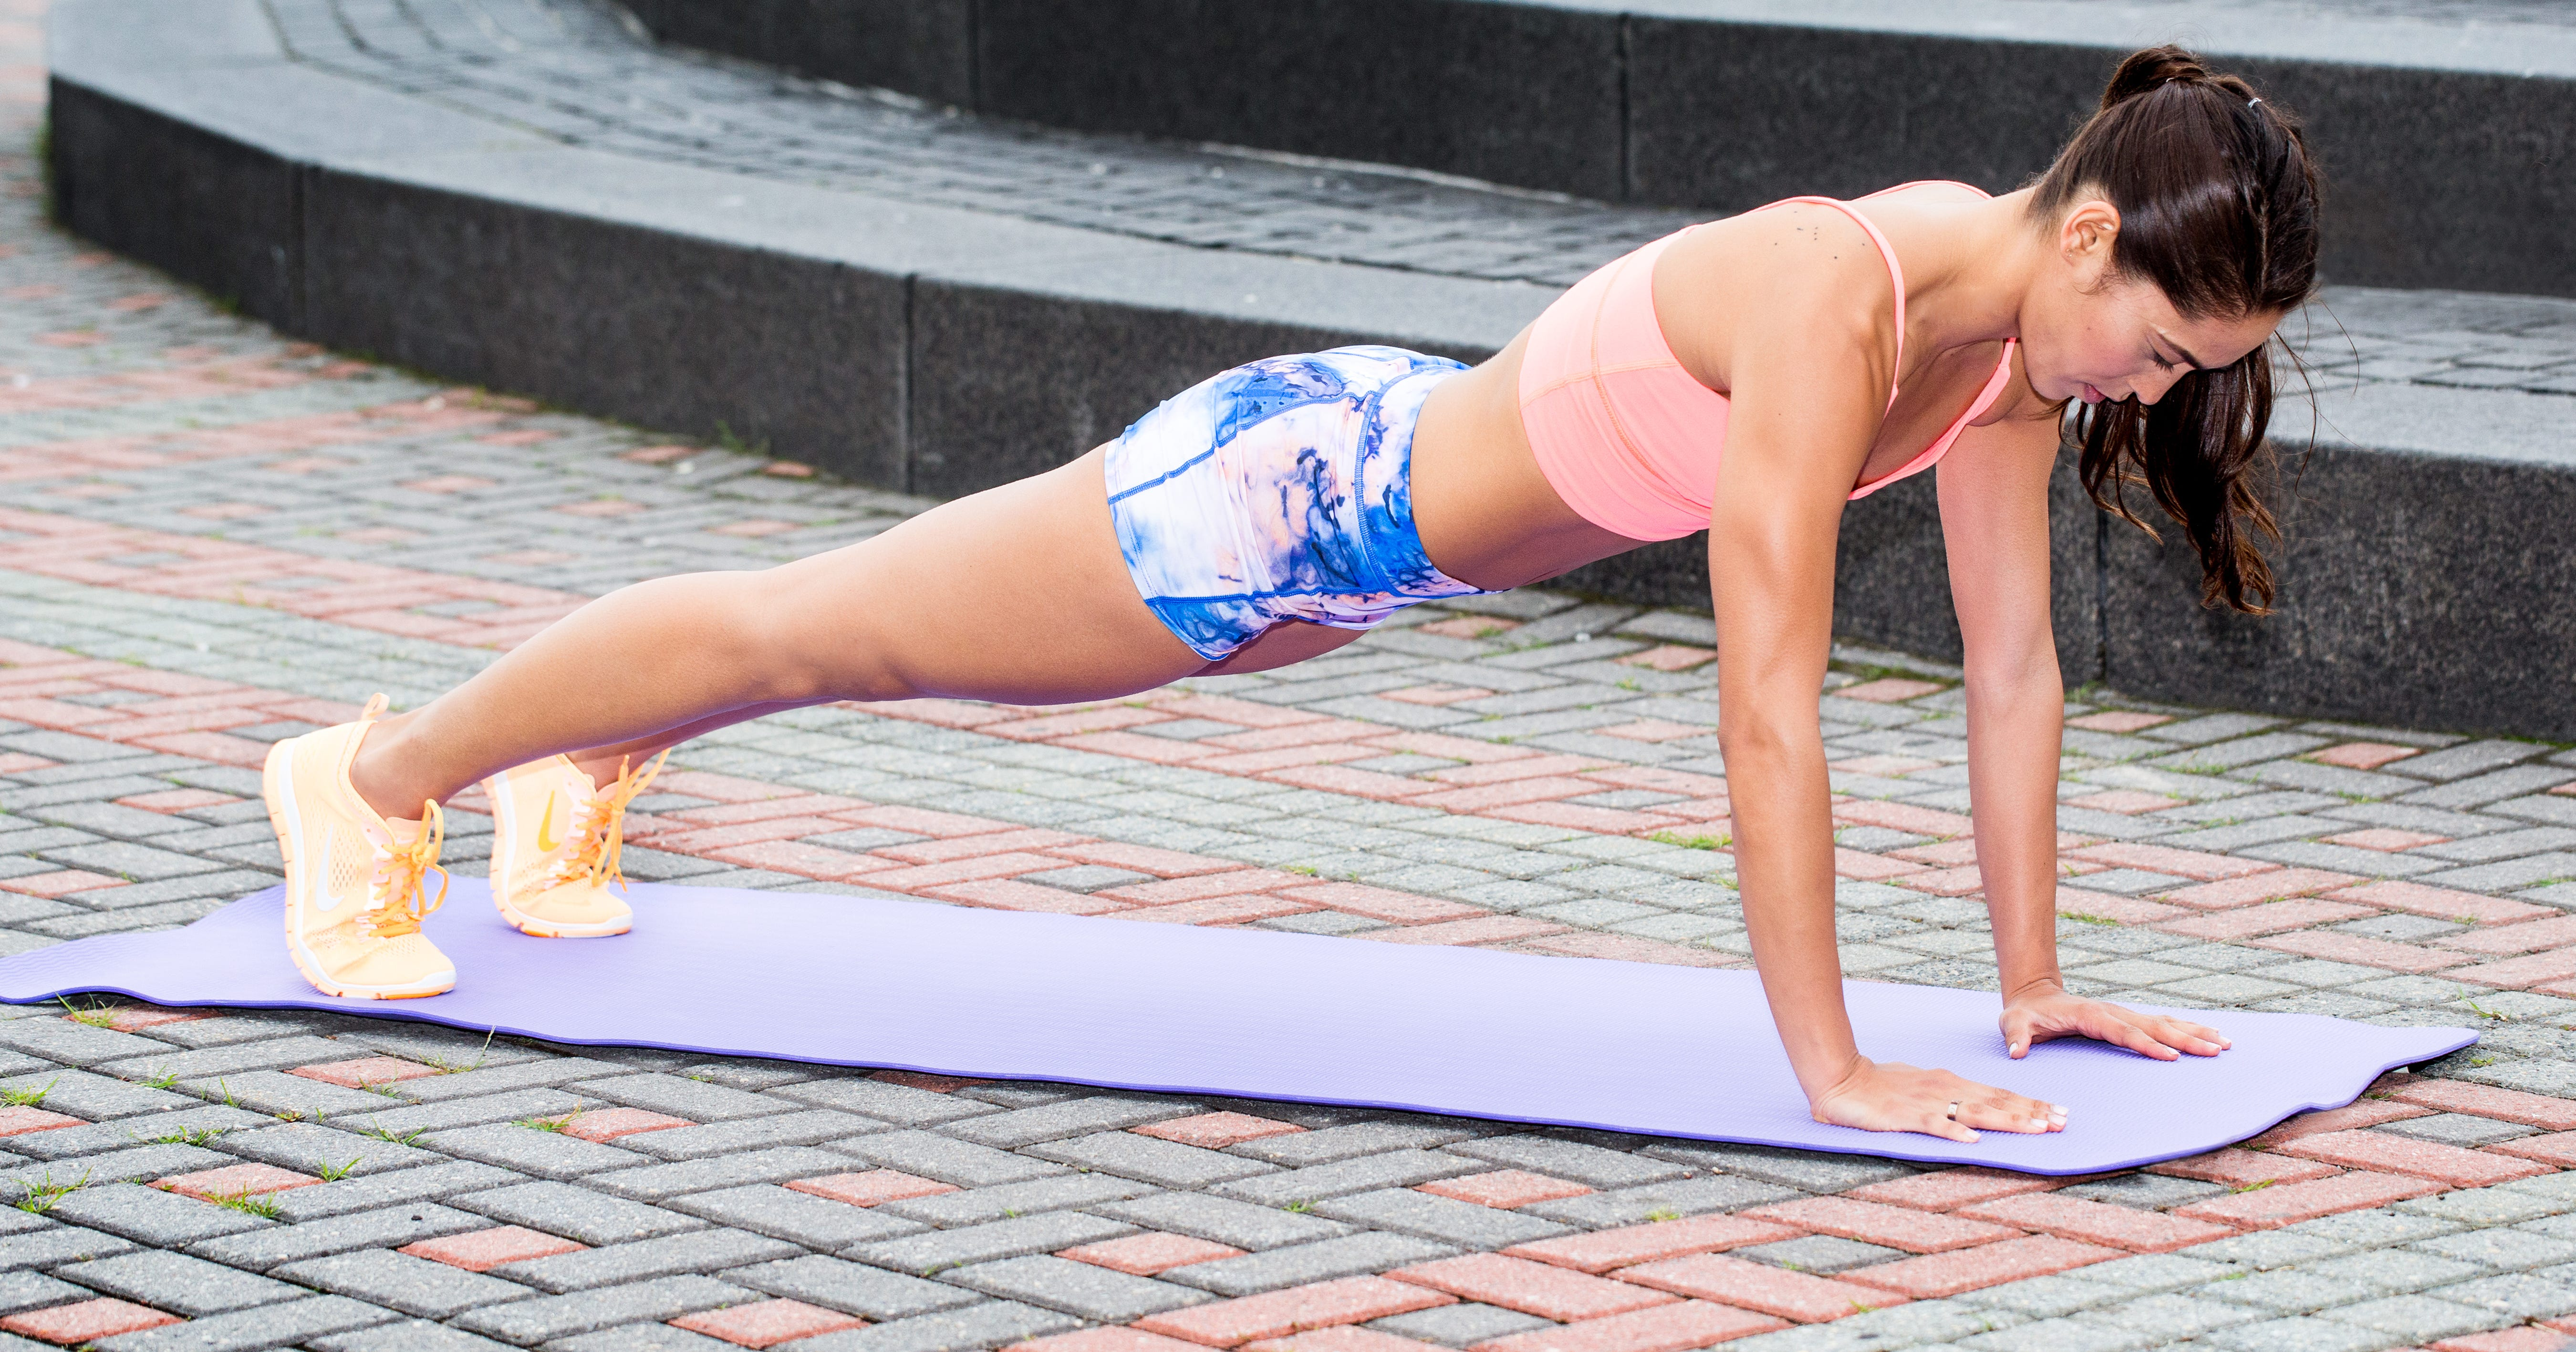 Workout tube let me finish yoga and i will give you